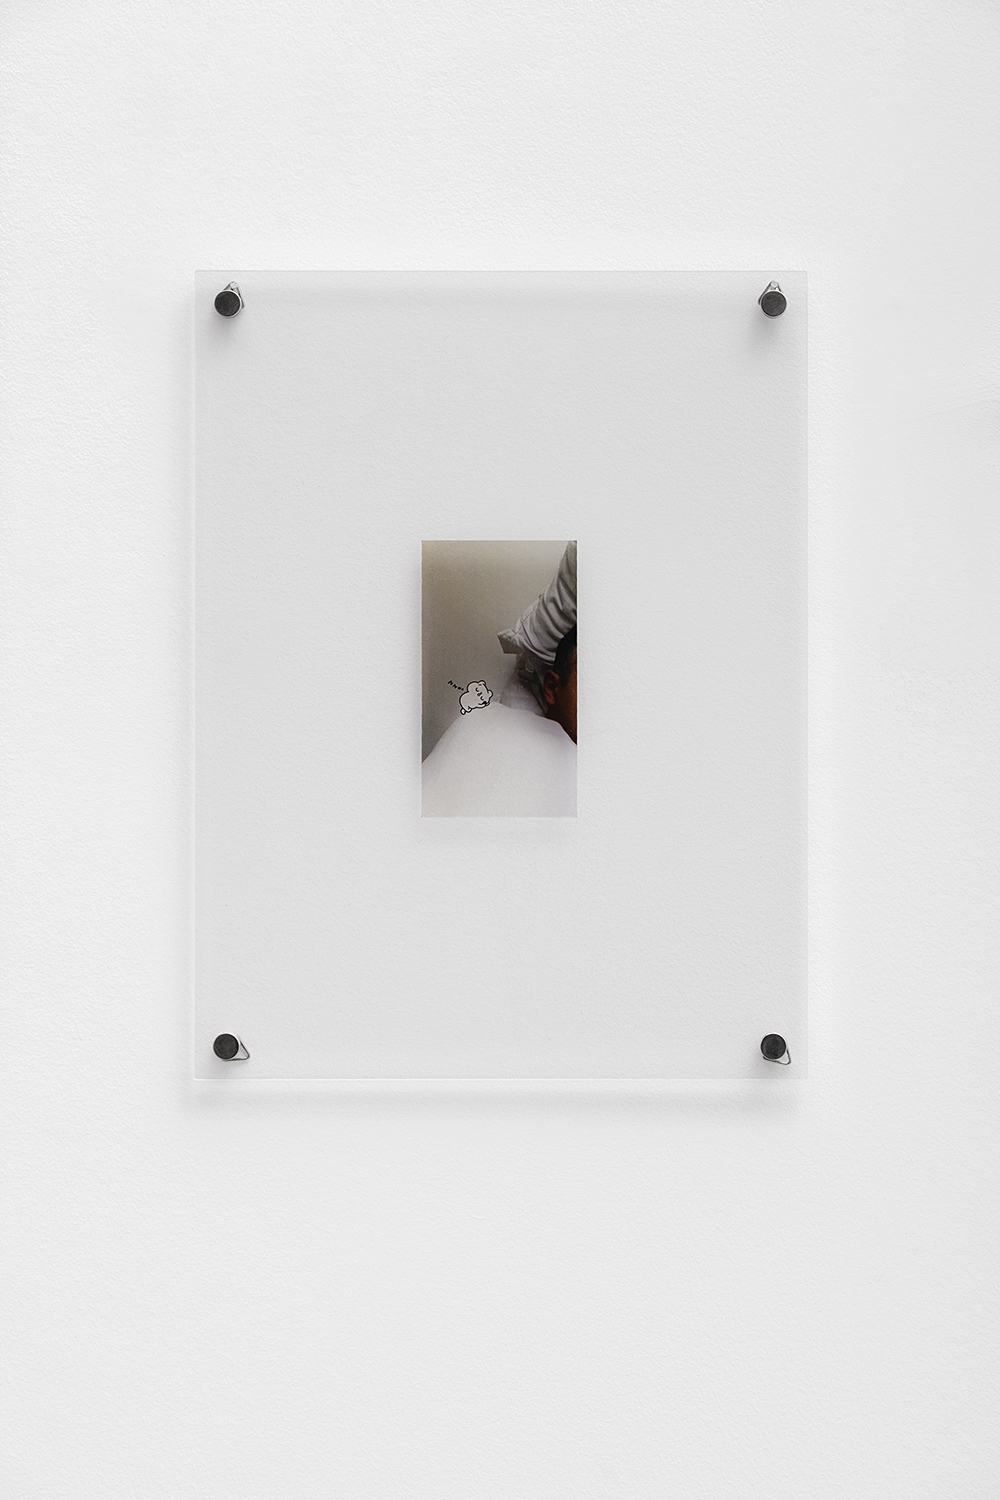 Unreleased Selfies,  Ben Elliot, 2019, Unique, Digital print on 0,75mm transparent polycarbonate sheet 12,3 x 7 cm with frame : 36 x 27 cm — Galerie Éric Hussenot, Paris